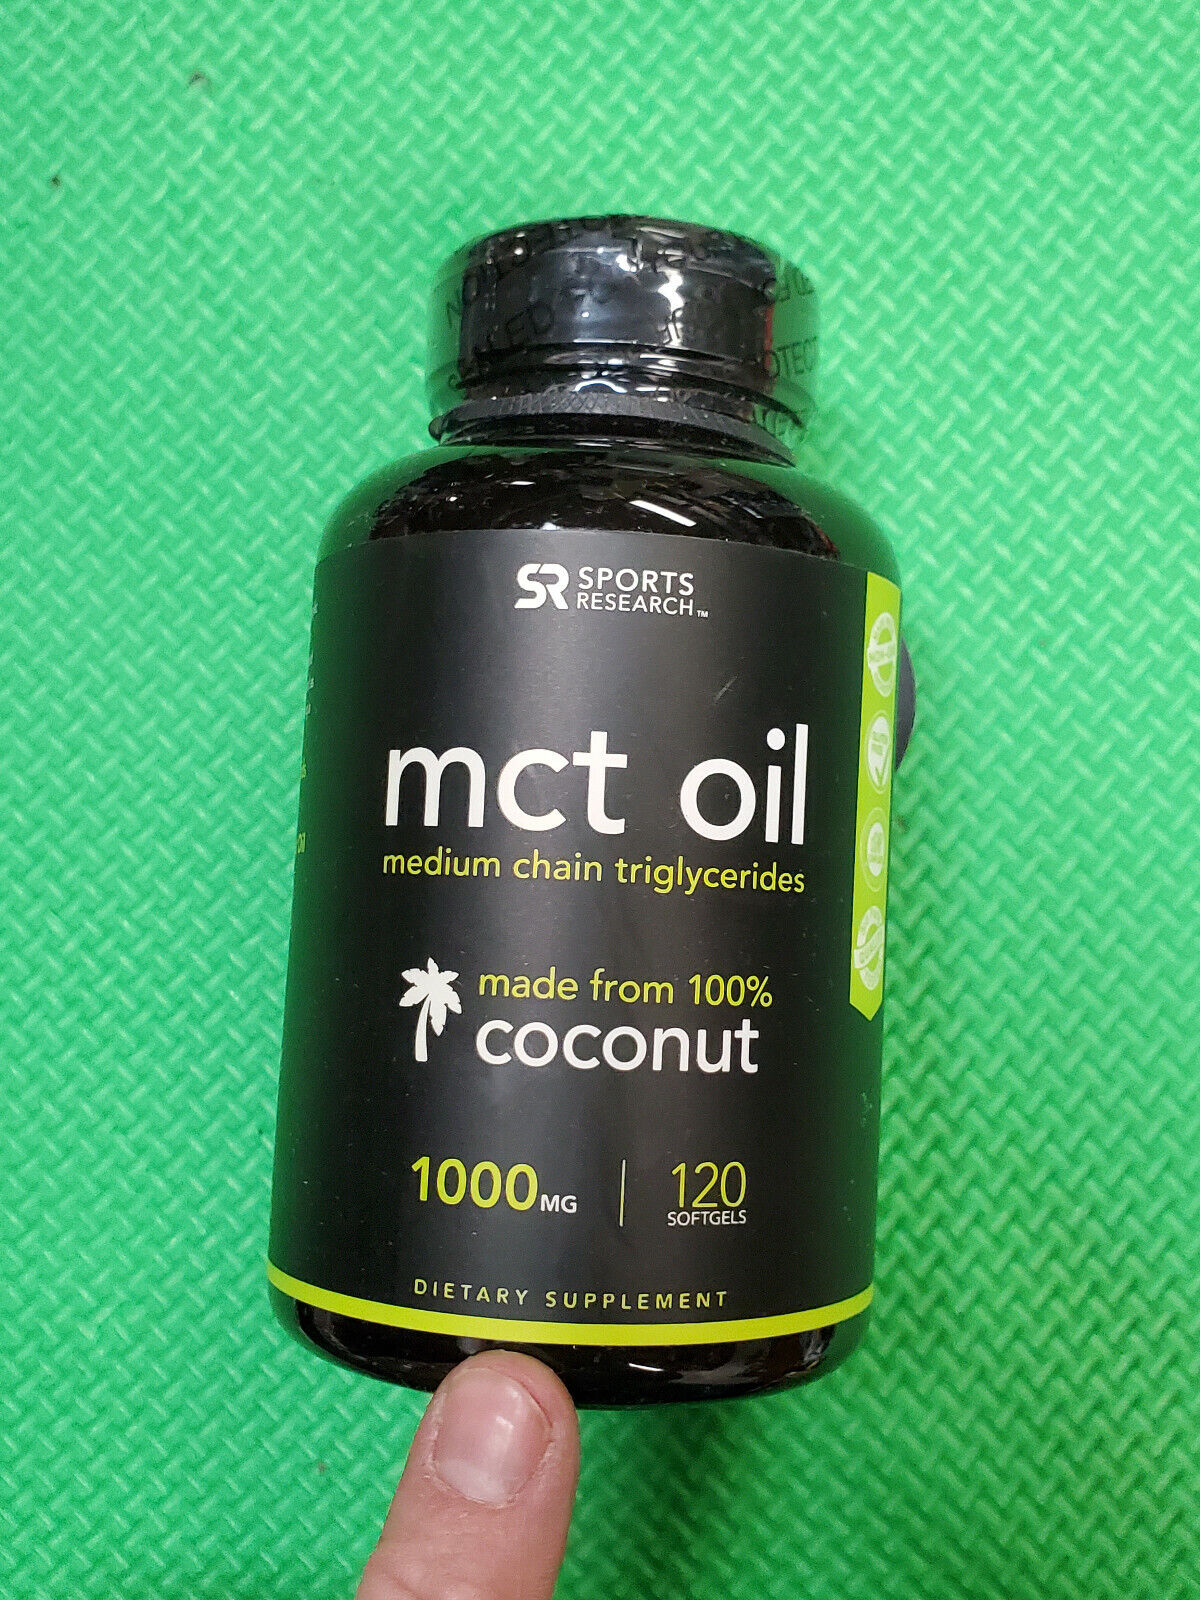 Sports Research MCT Oil 1000 mg 120 Softgels exp-6/2021